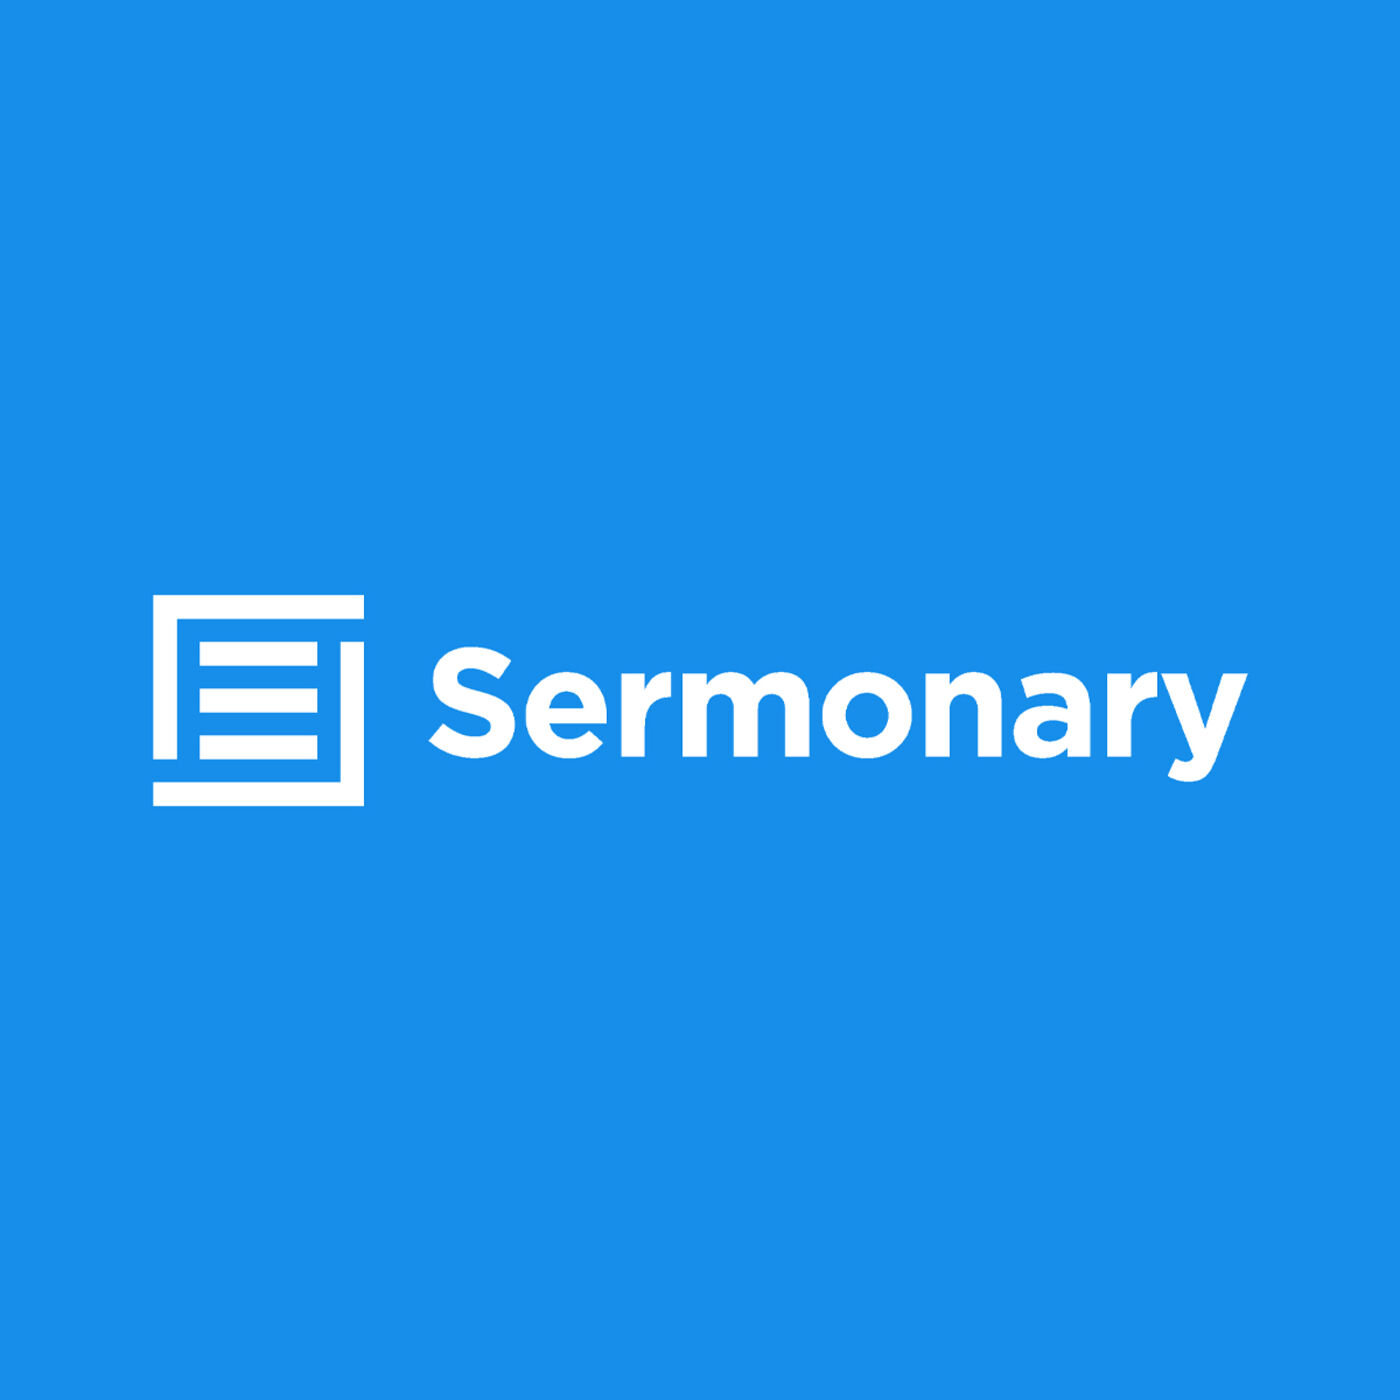 How to Battle Criticism and Negativity as Pastor - Interview with John Stange on Sermonary